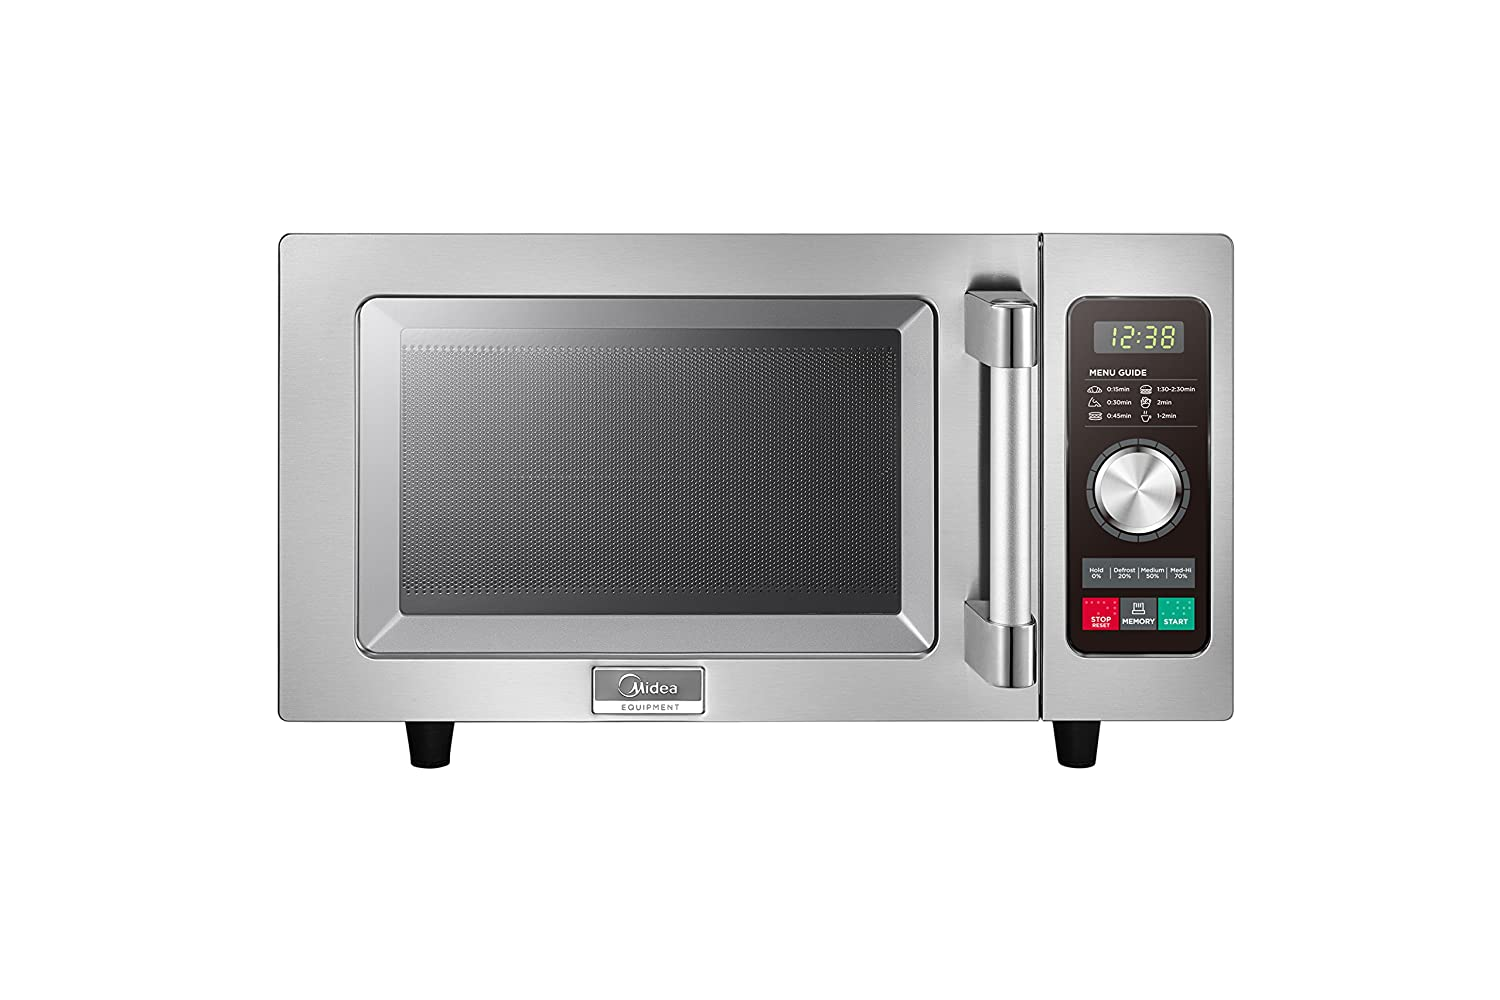 Midea 1025F2A Light Duty Commercial Microwave 1000W with Dial & Touch Controls